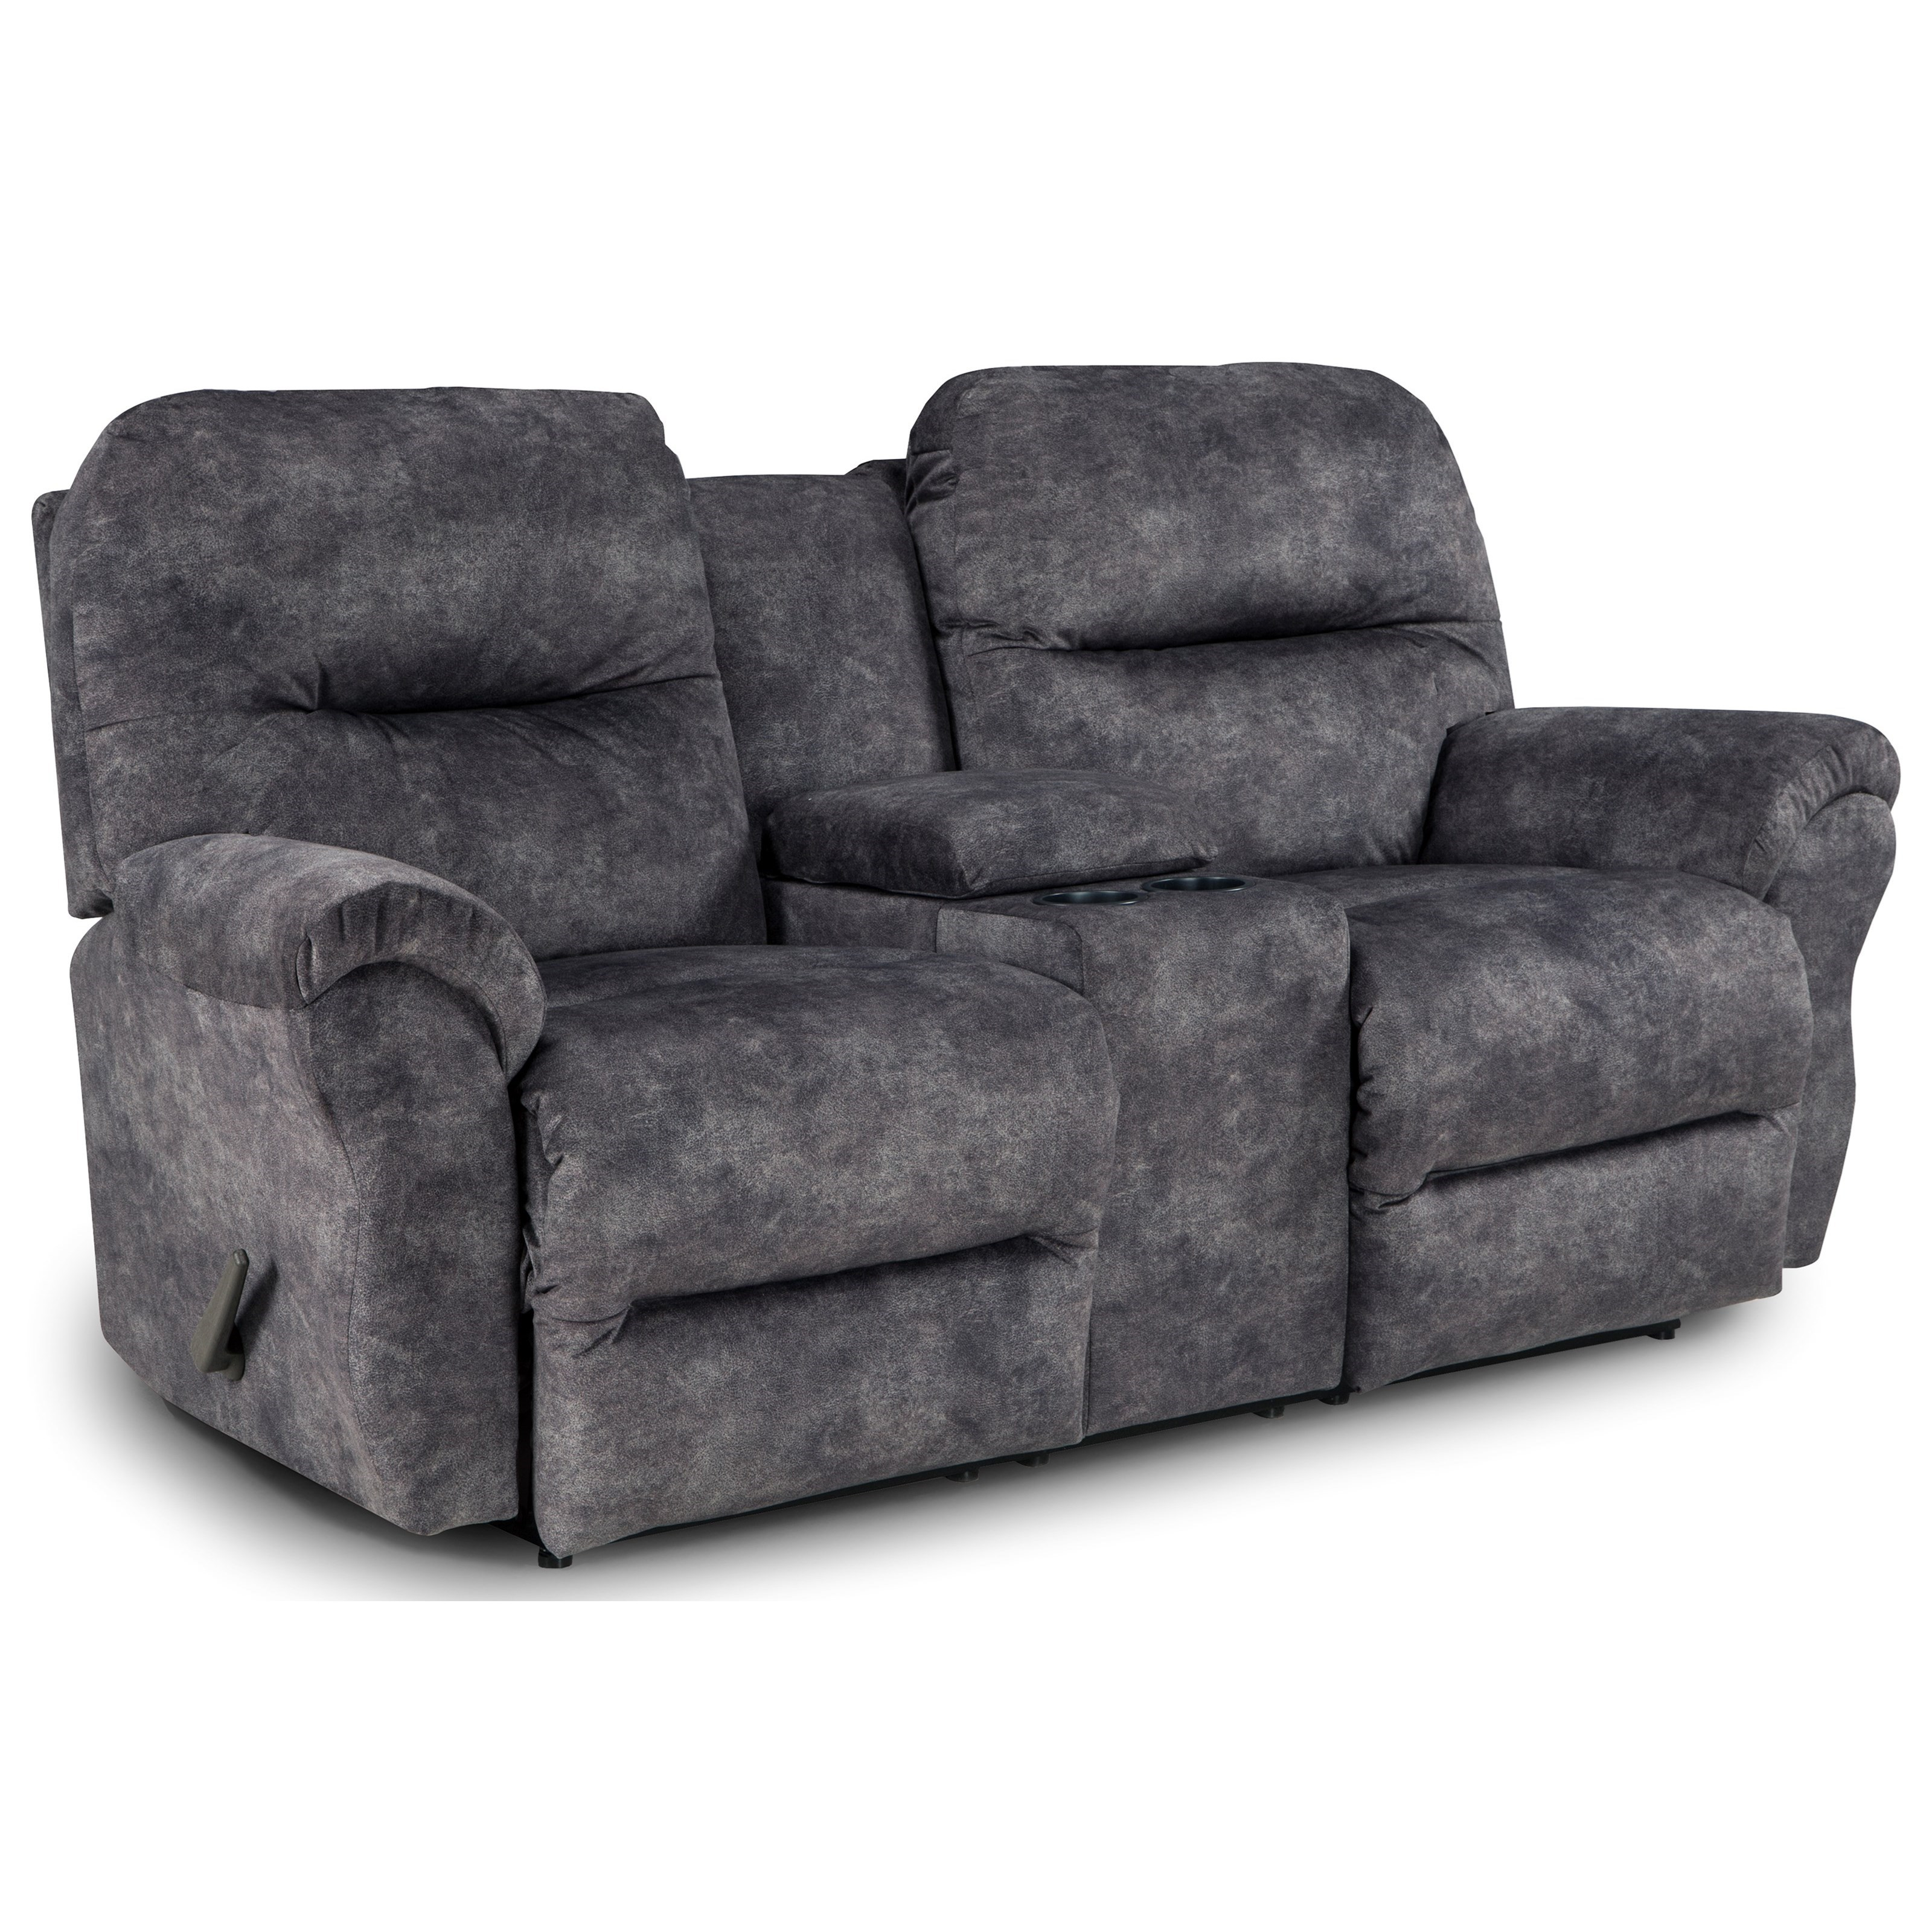 Bodie Love Seat by Best Home Furnishings at Baer's Furniture